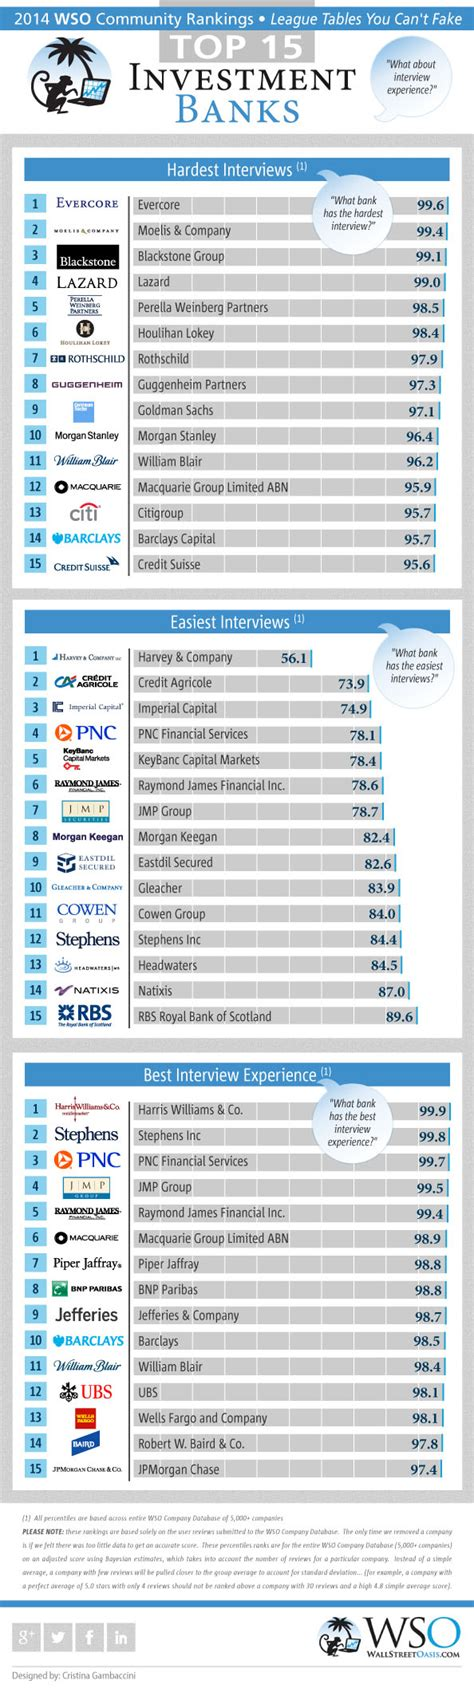 top investment banks 2014 wso rankings for investment banks interviews part 3